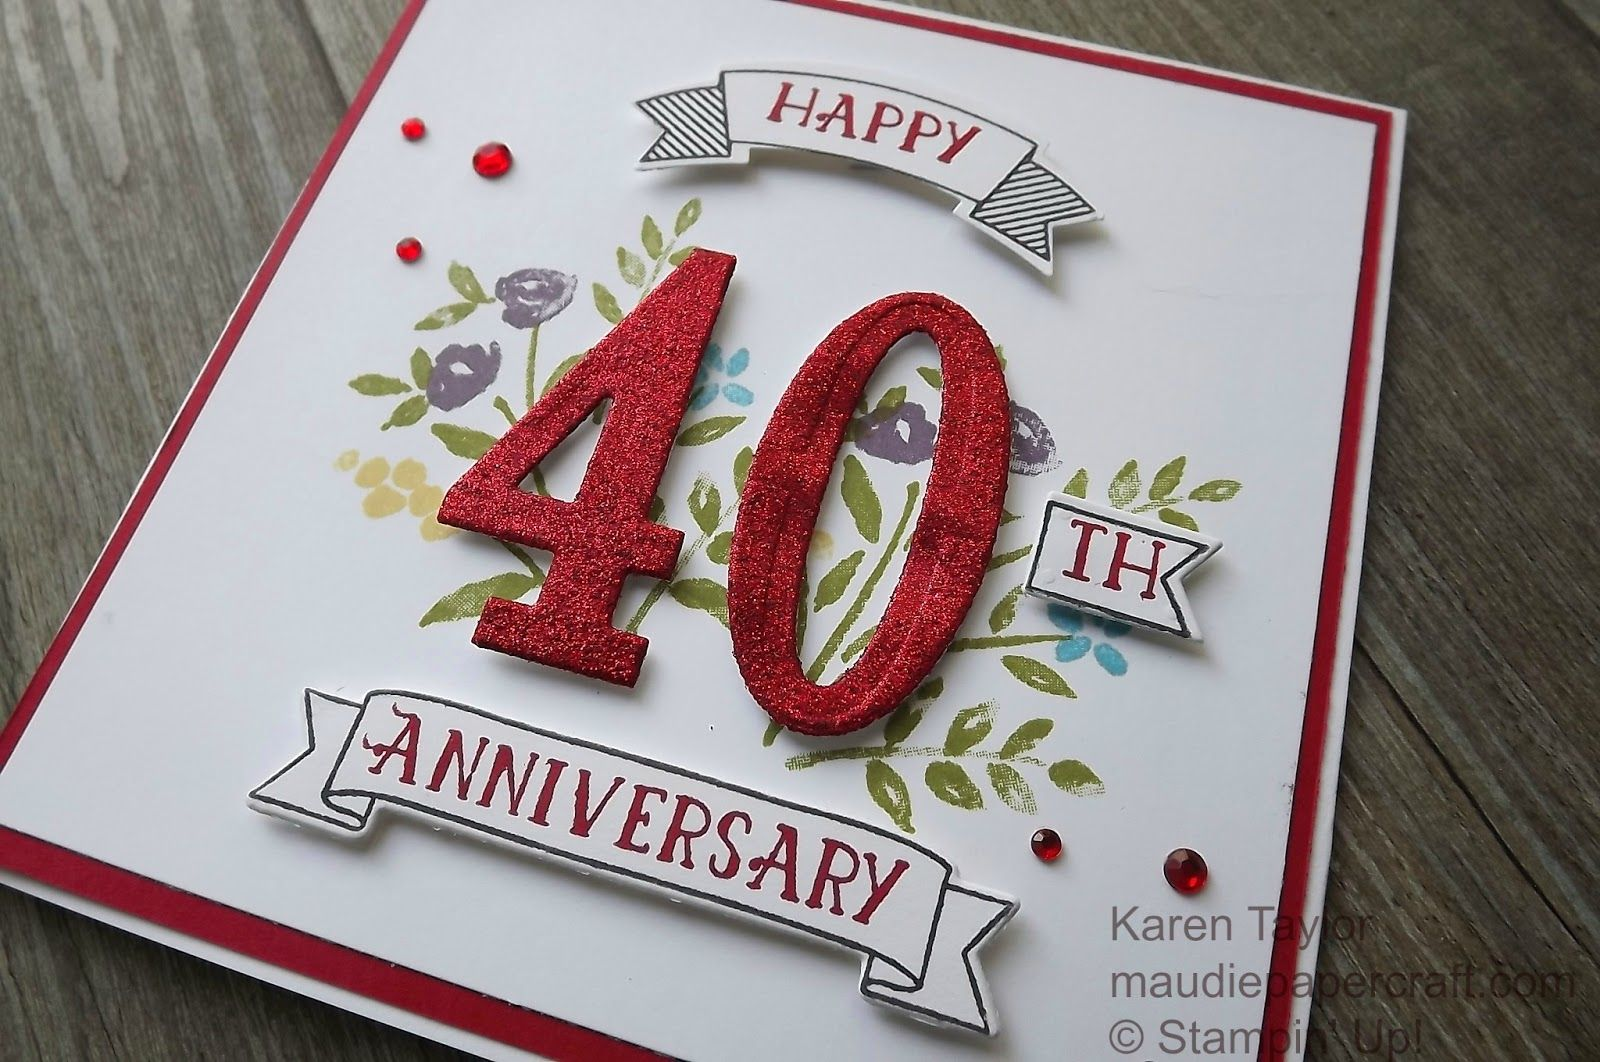 Stampin up! number of years 40th anniversary card number of years